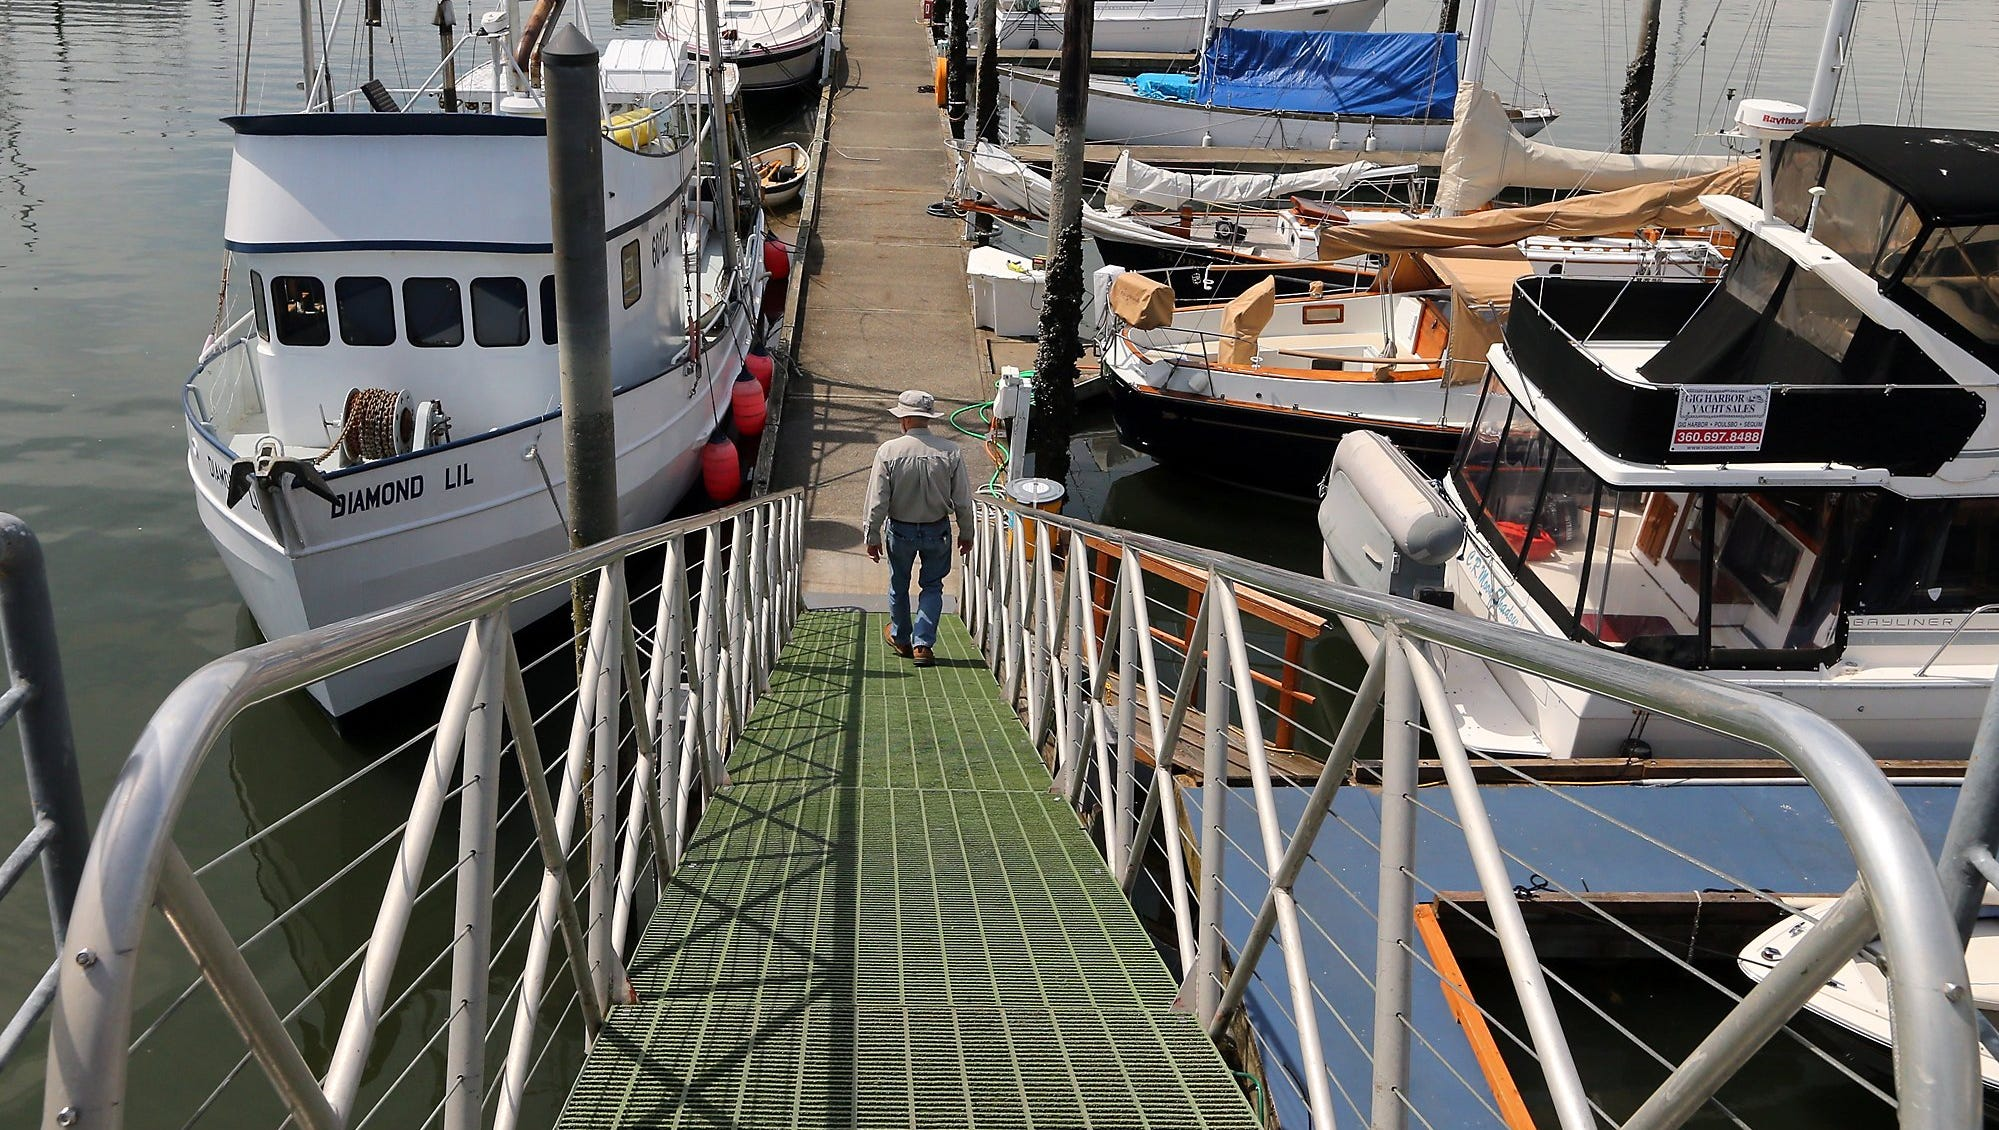 2015 FILEA boater walks down the steep dock during low tide at the Poulsbo Marina on Thursday, May 21, 2015.